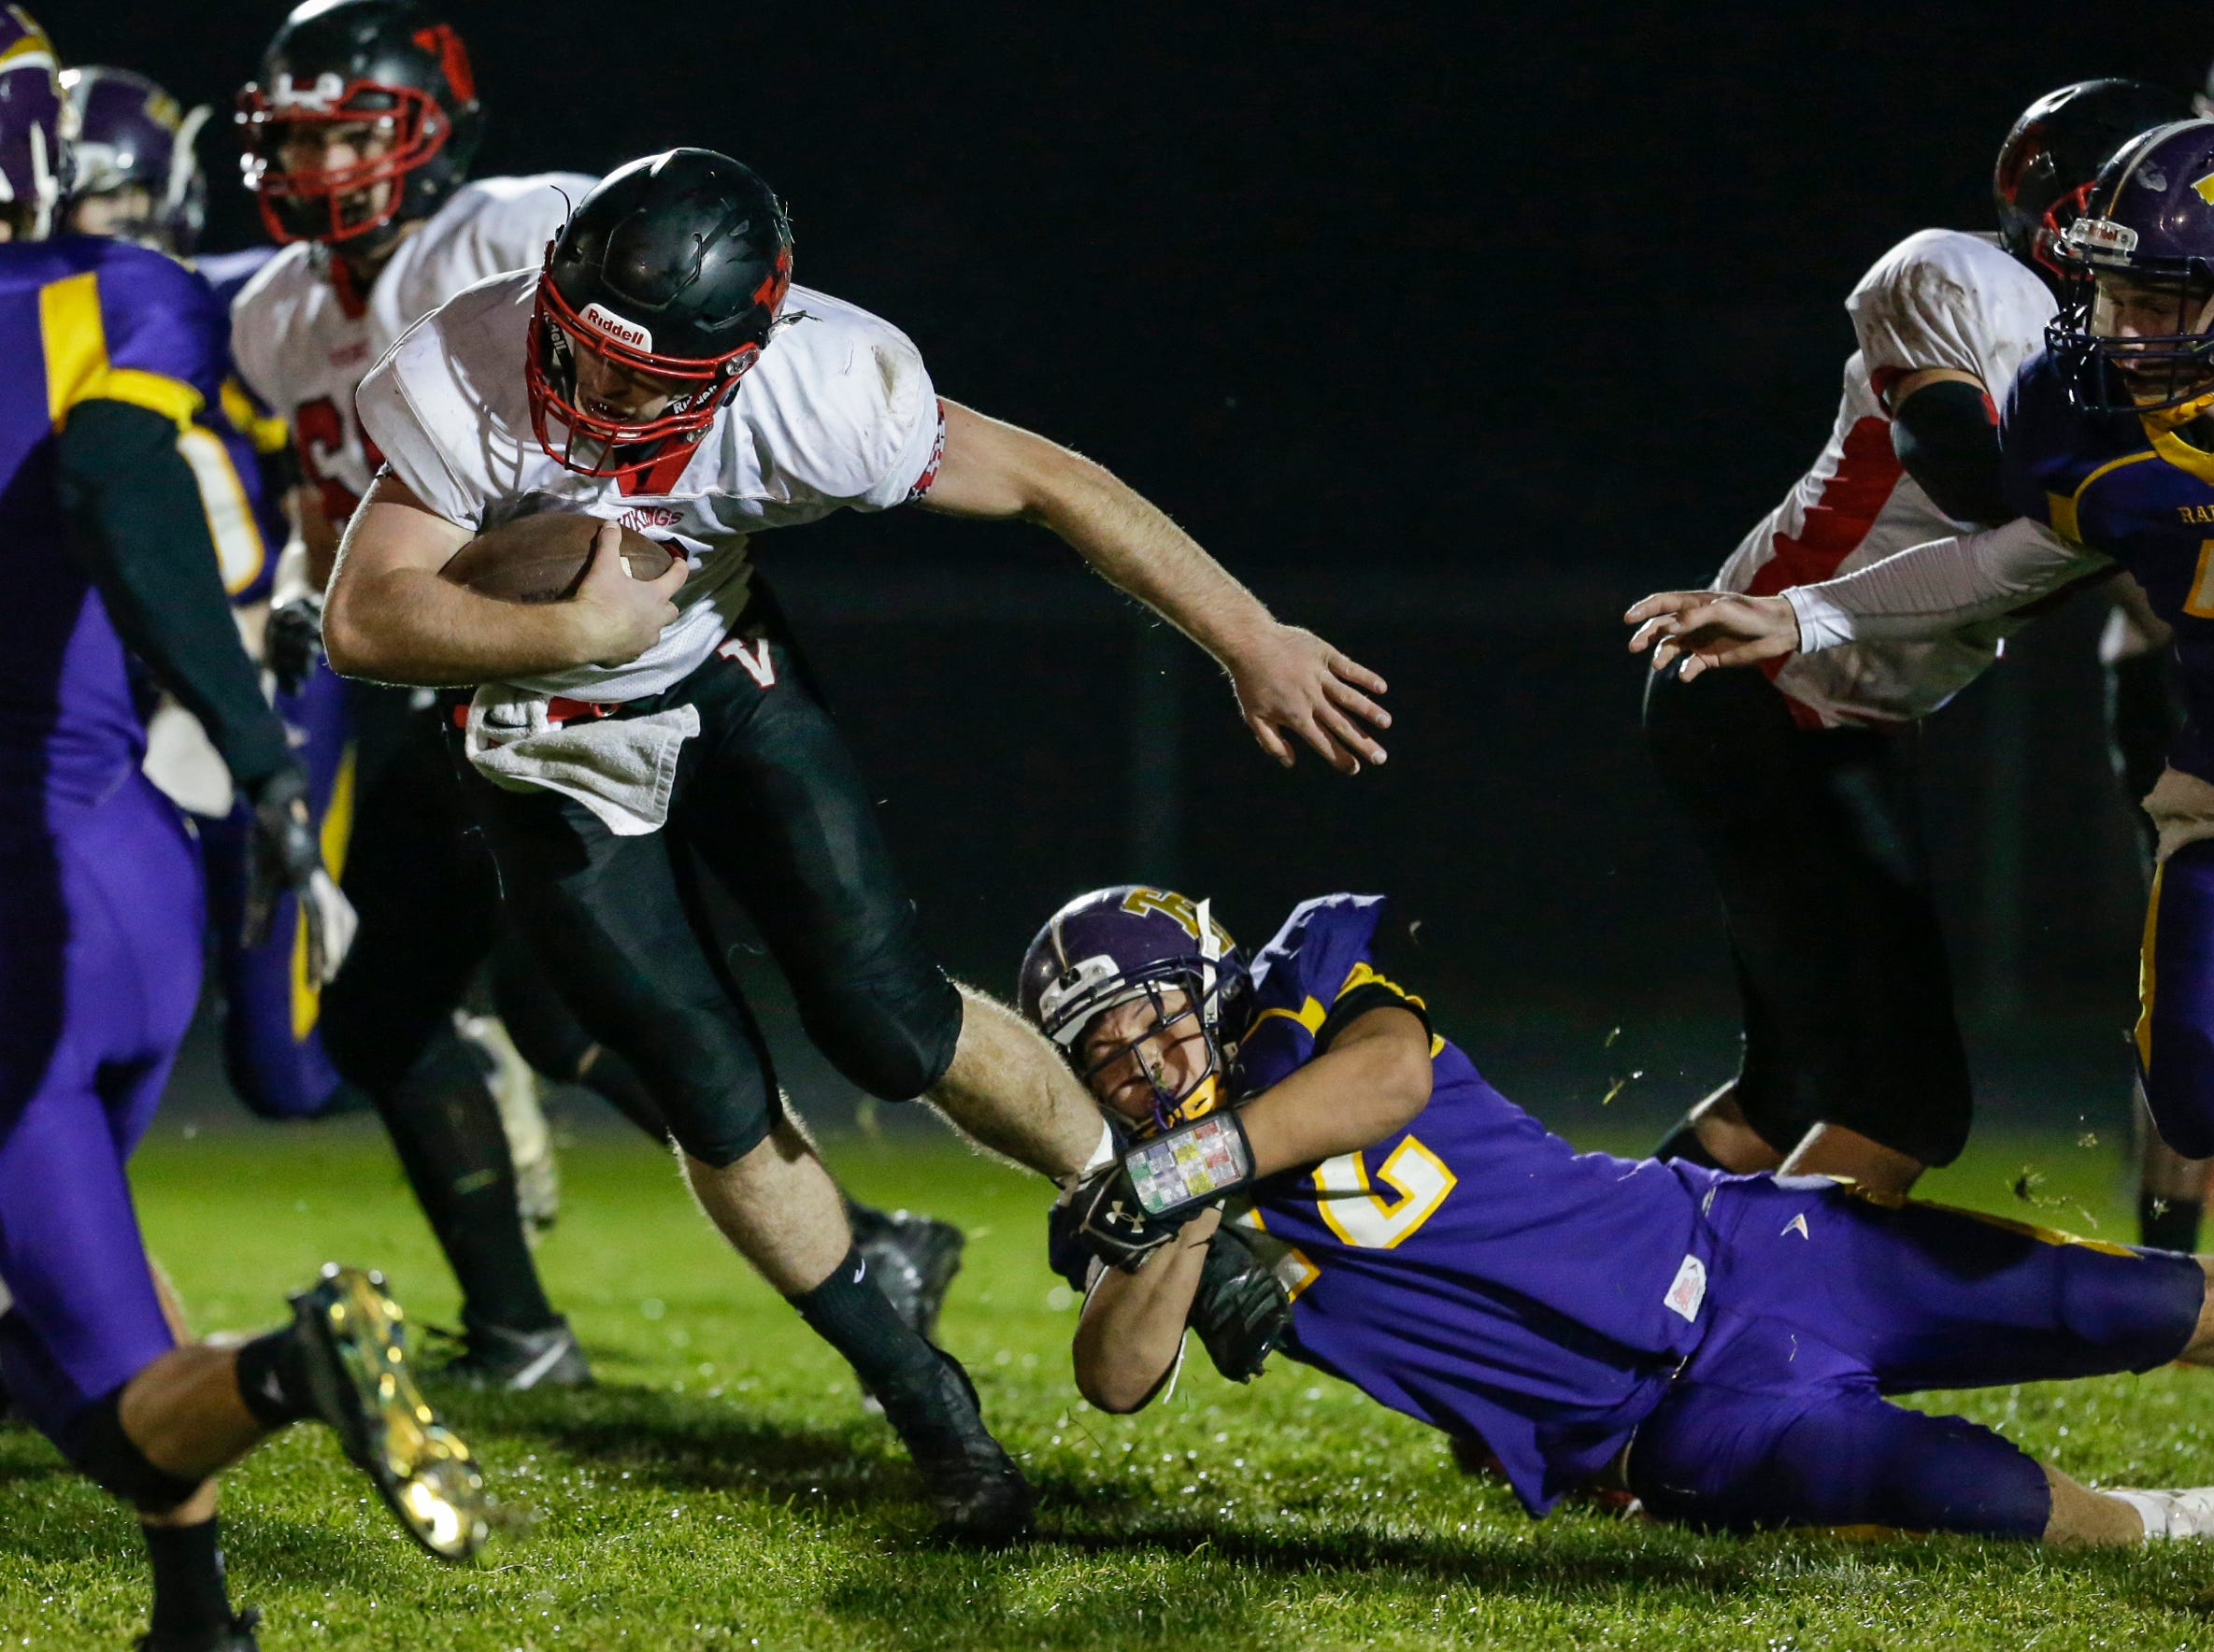 Two Rivers' Anderson Kopidlansky (72) tackles Valders' Fletcher Dallas (2) during an Eastern Wisconsin Conference game at Two Rivers High School Friday, October 5, 2018, in Two Rivers, Wis. Joshua Clark/USA TODAY NETWORK-Wisconsin